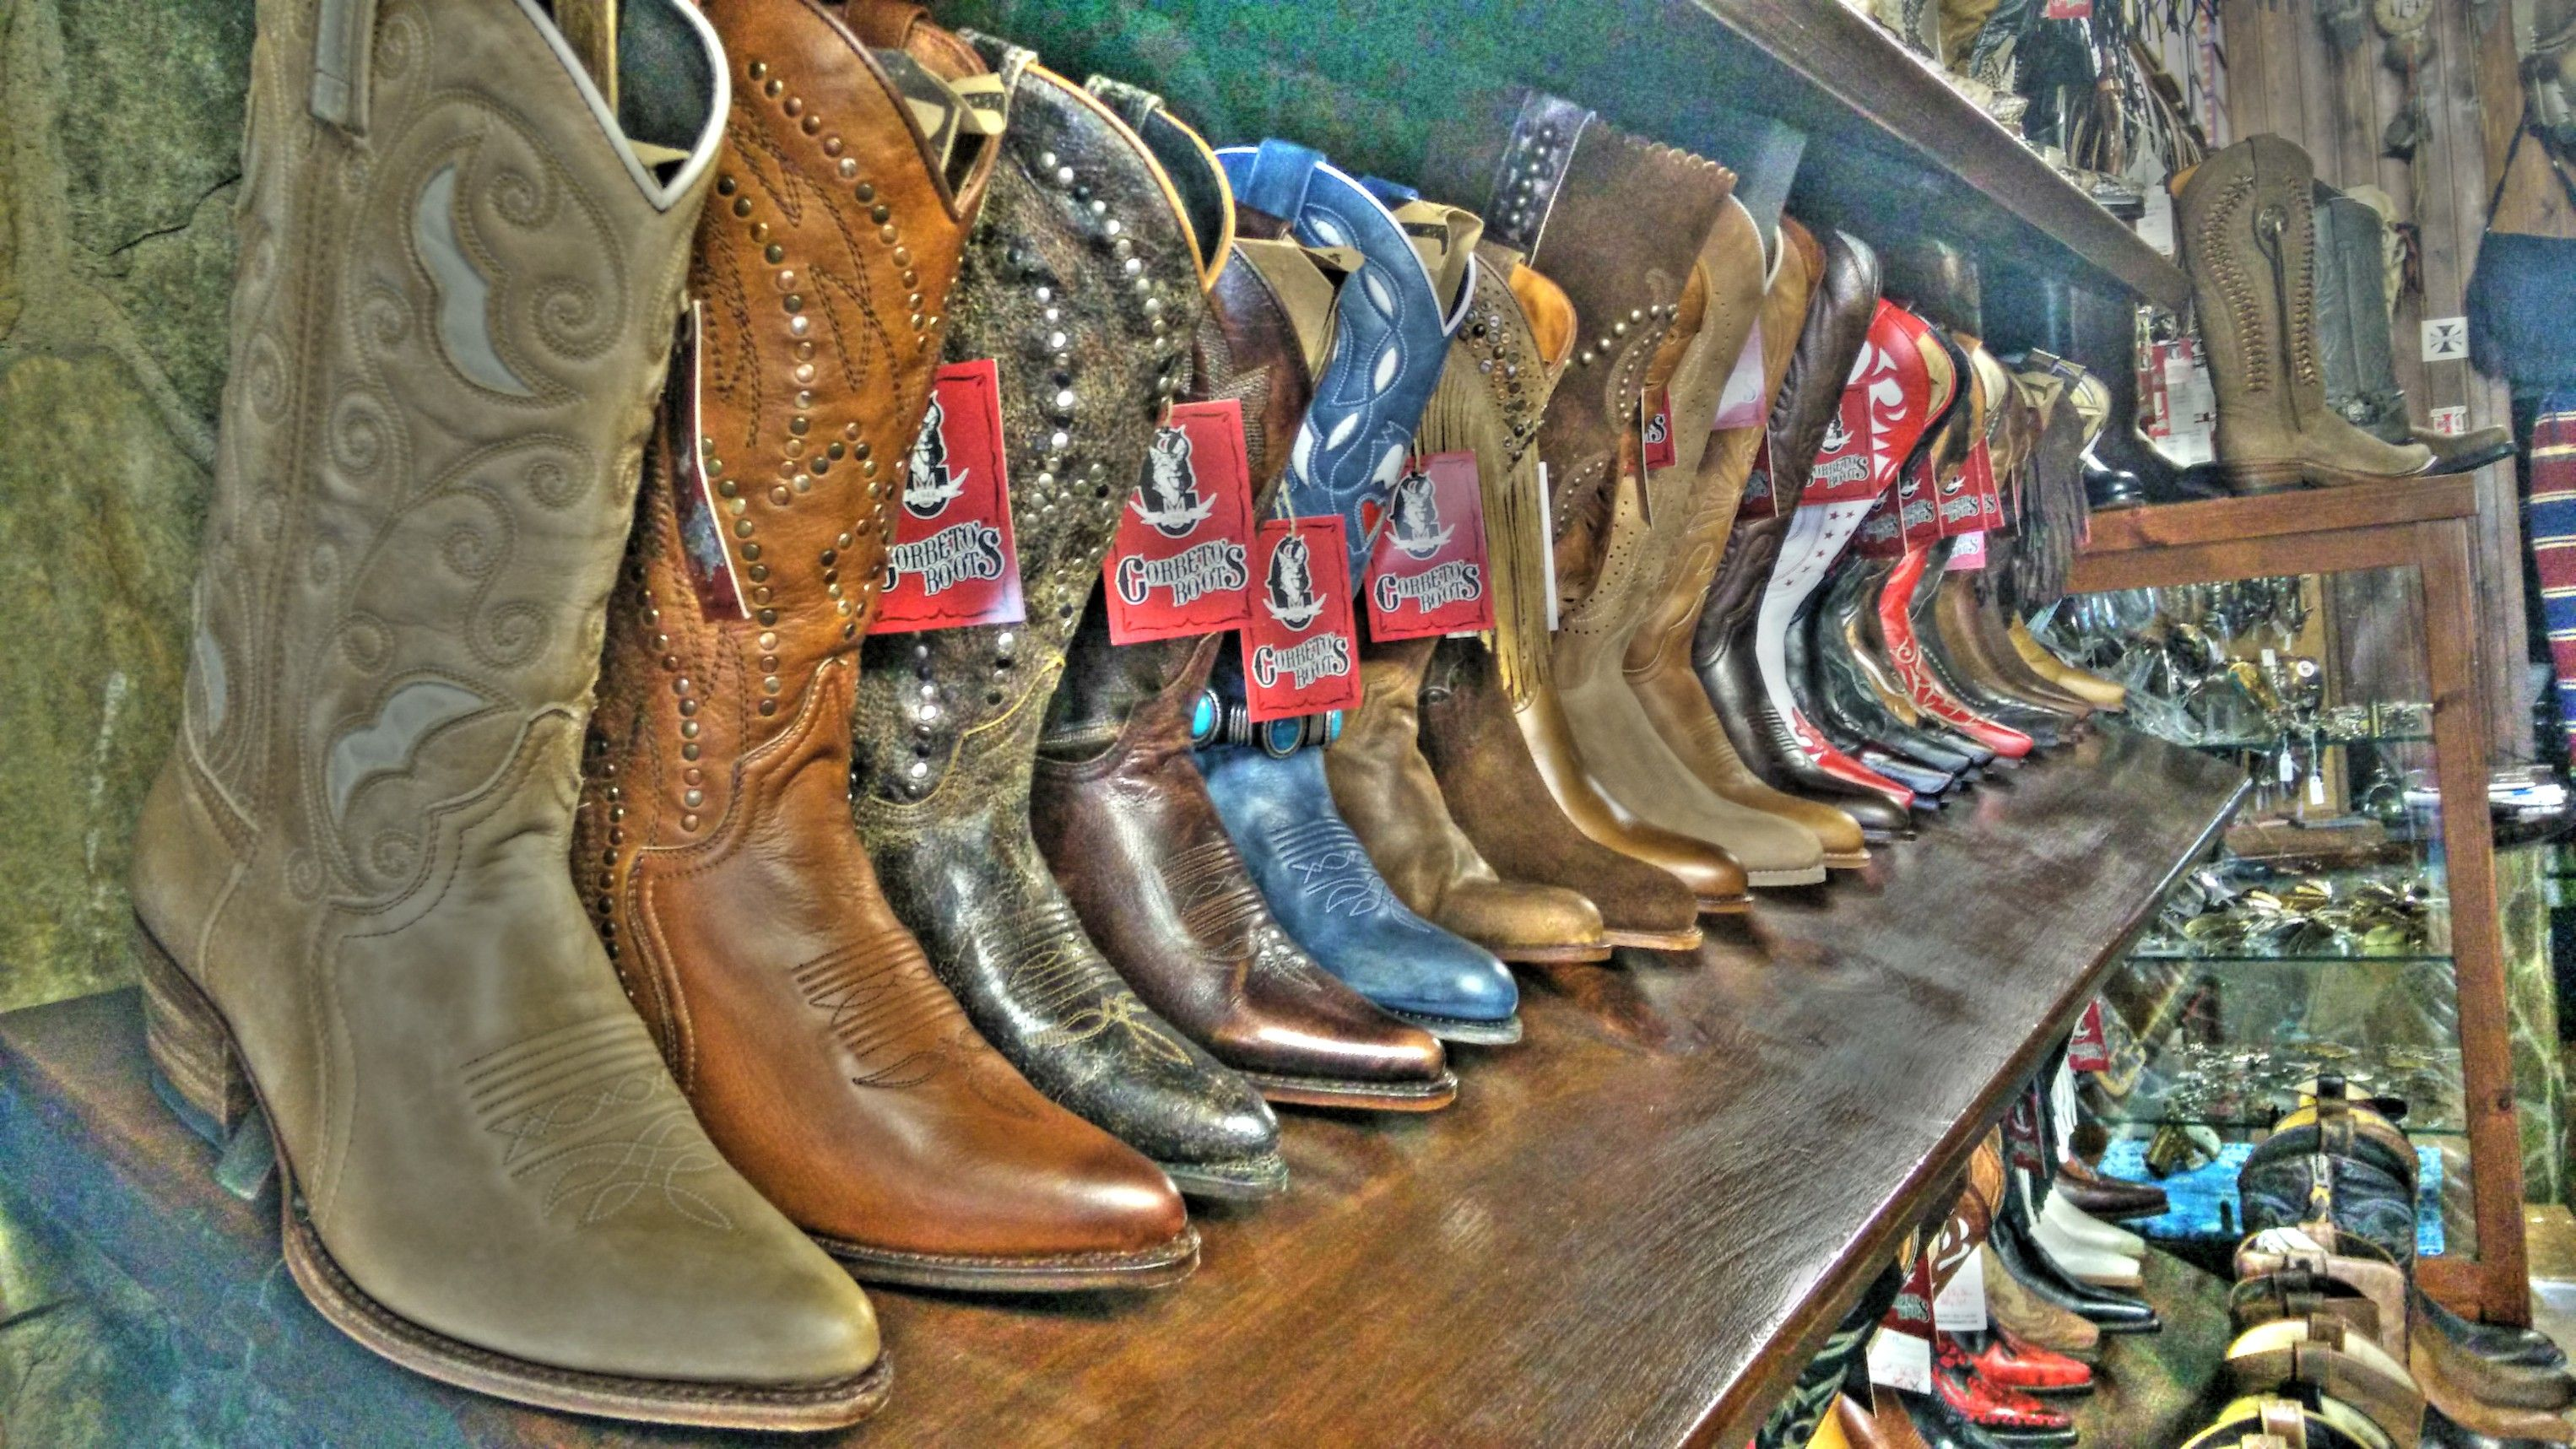 Algunas de las #botas #cowboy para mujer que puedes encontrar en Corbeto's Boots | Some of the cowboy boots you can find at Corbeto's #Boots - www.corbetosboots.com